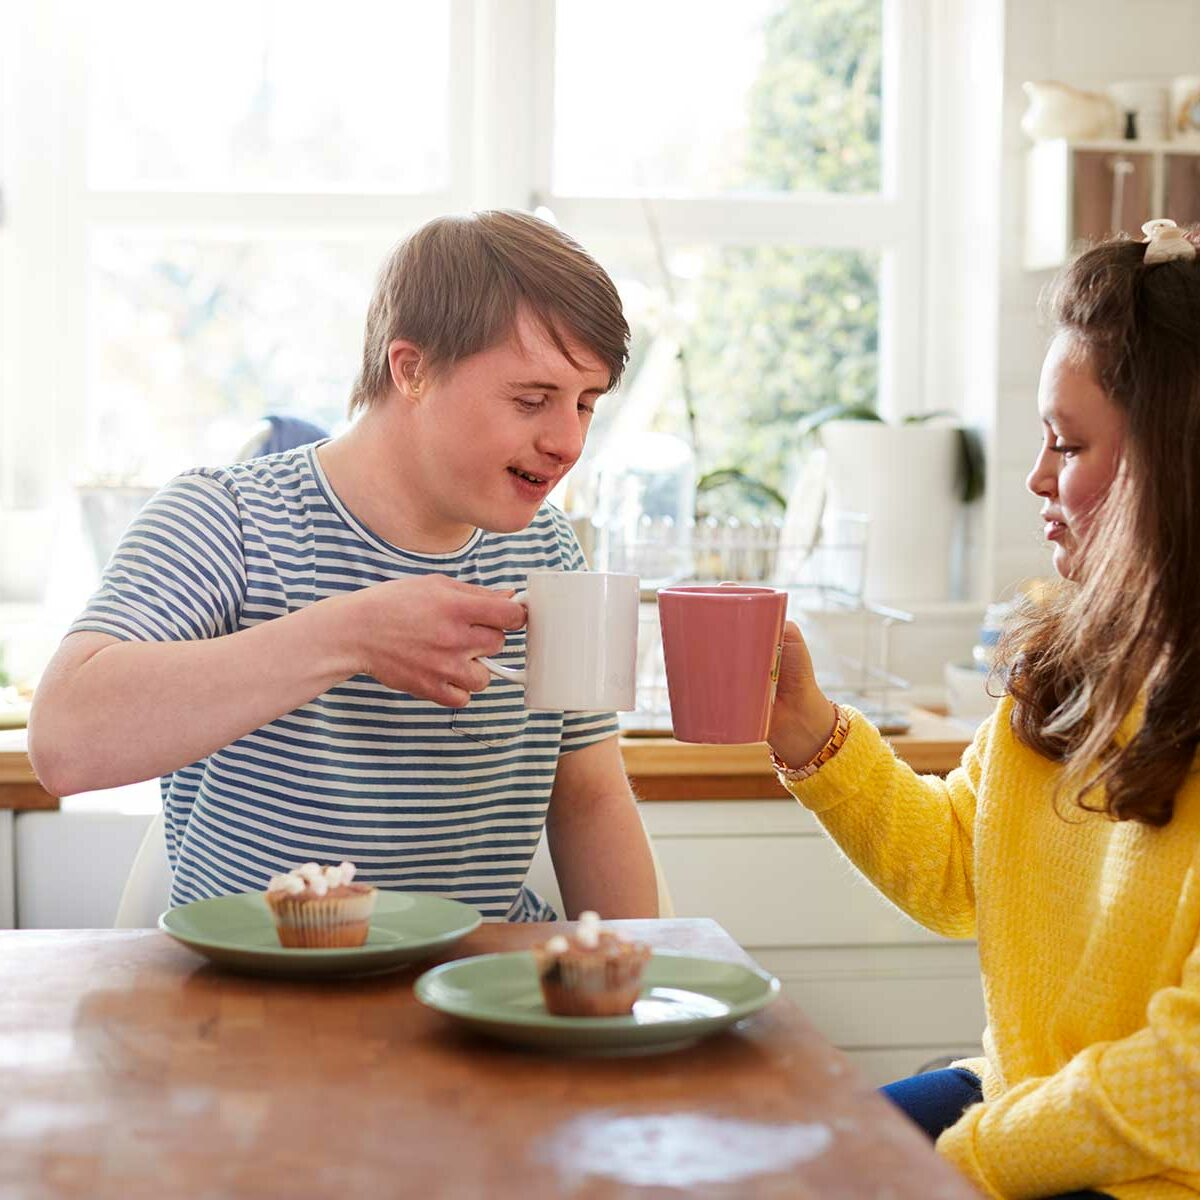 A young man with Downs syndrome drinking tea with a friend